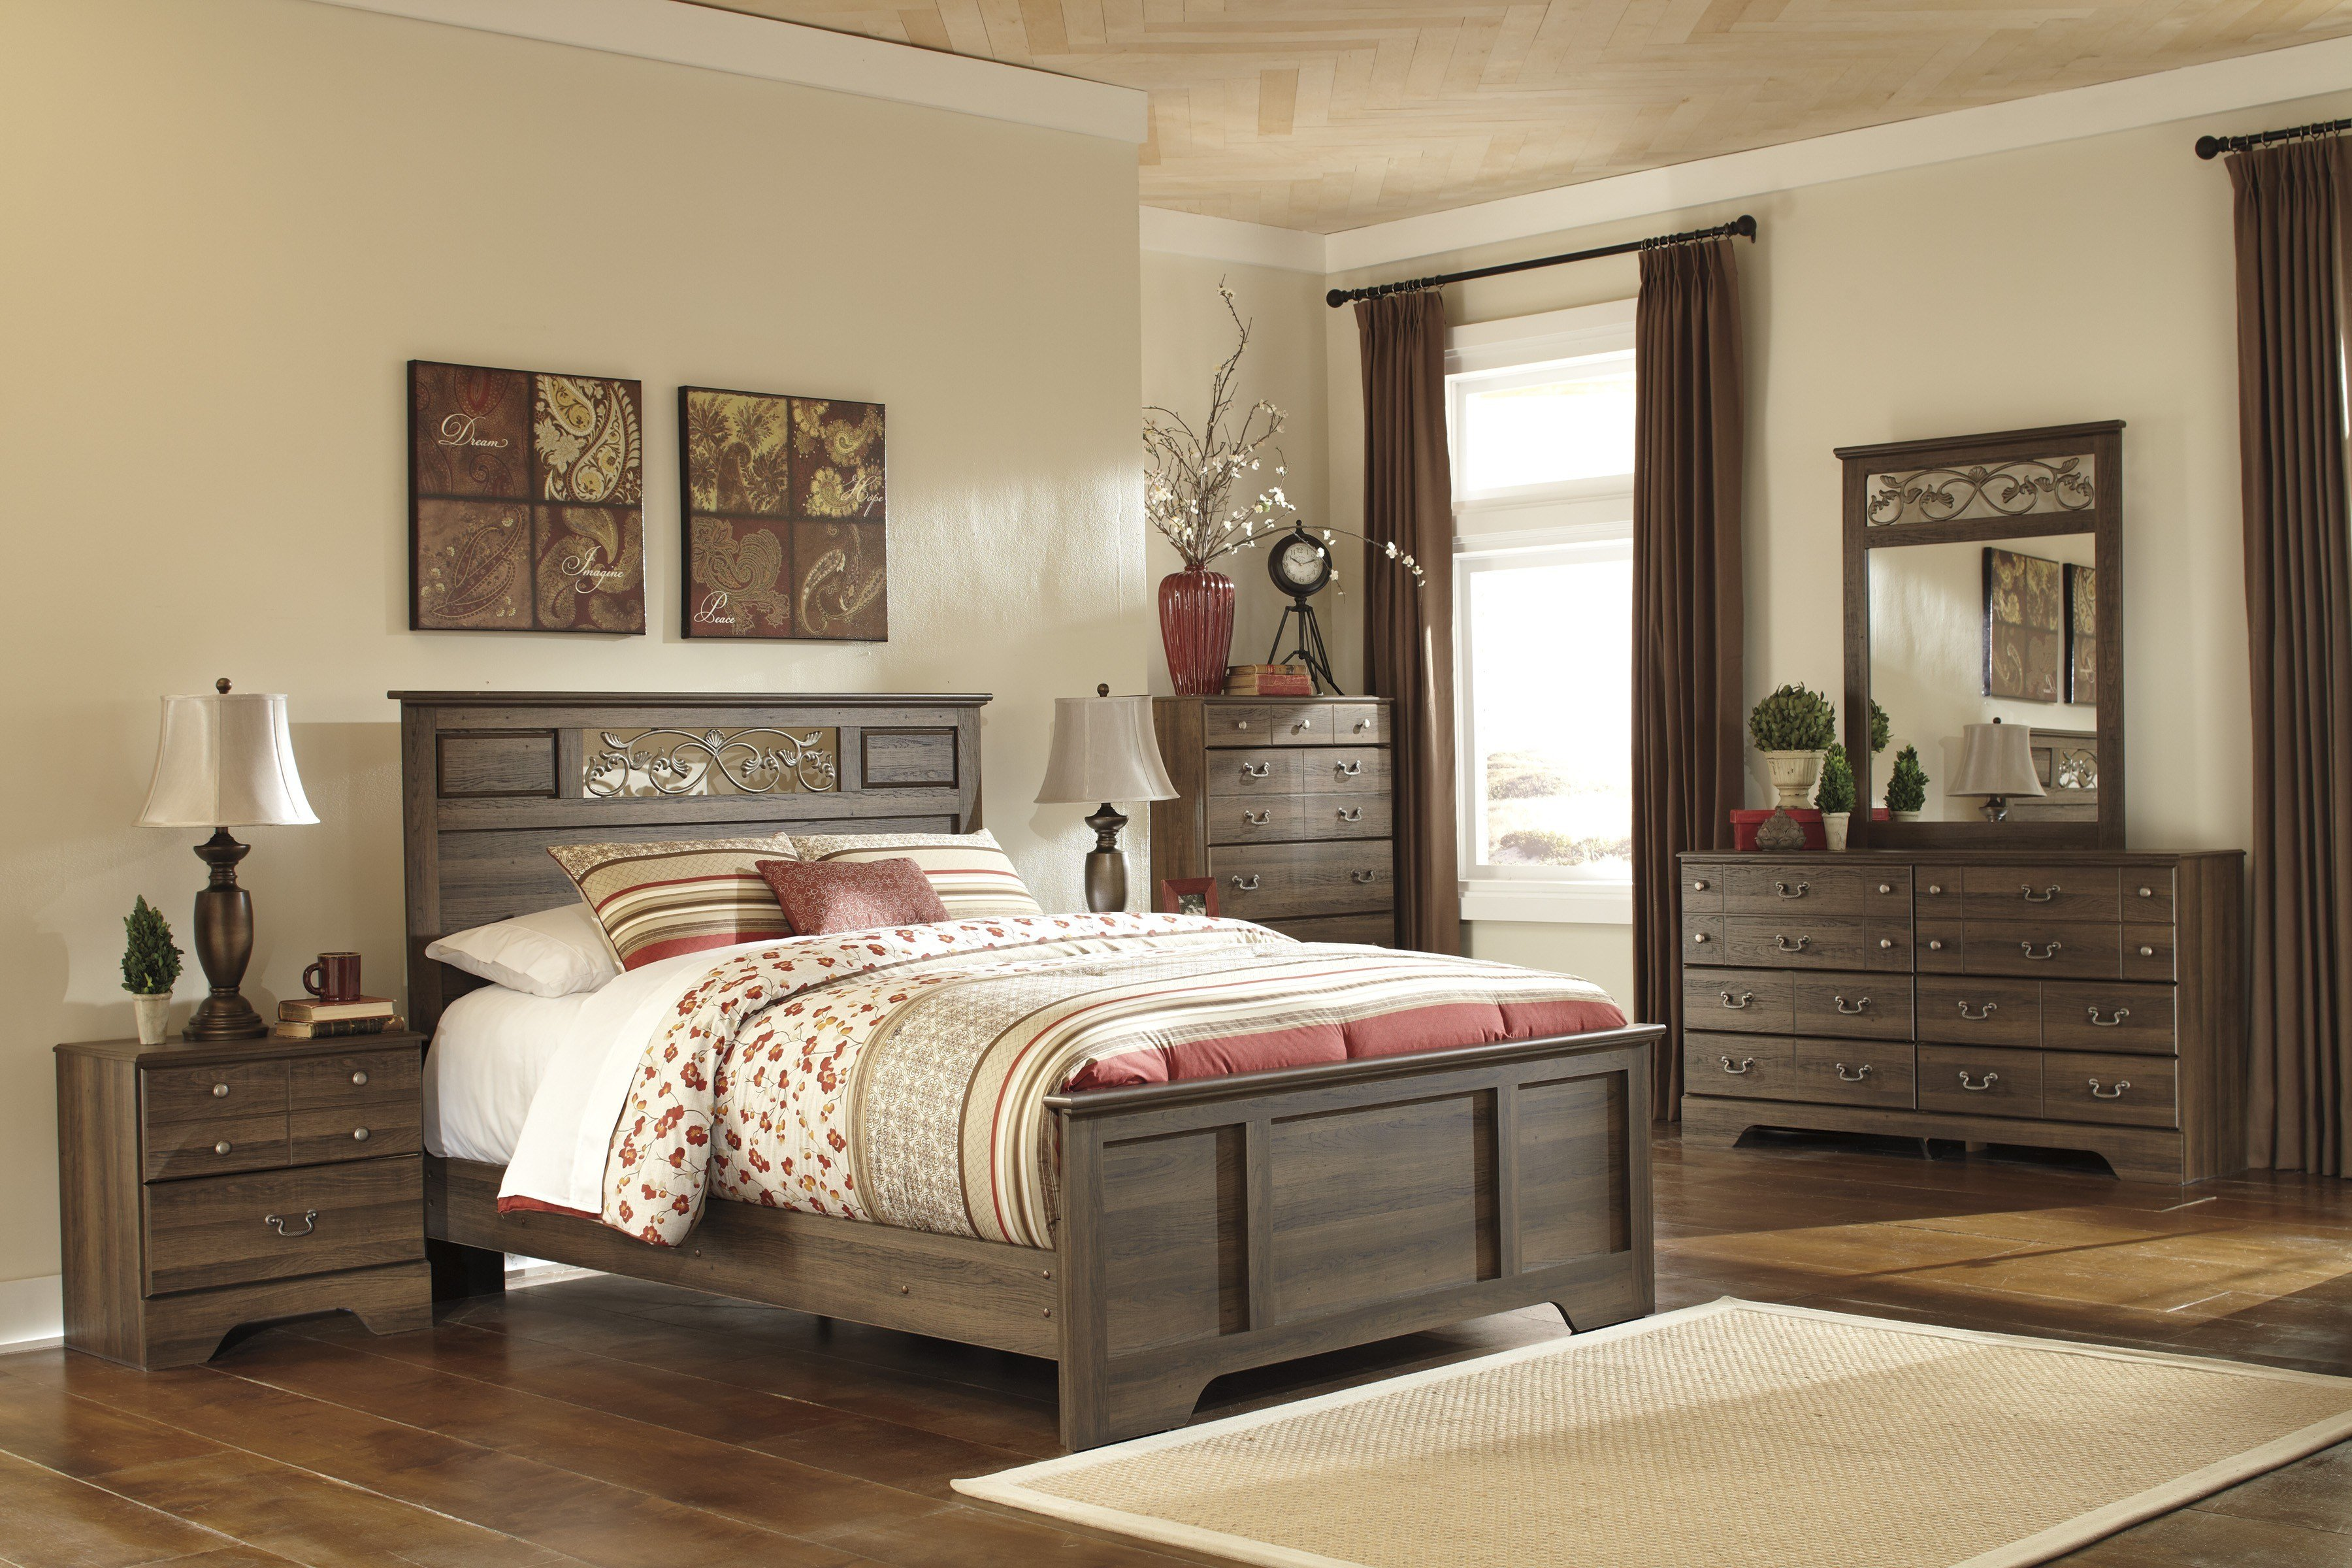 Best Allymore Panel Bedroom Set From Ashley B216 55 51 98 Coleman Furniture With Pictures